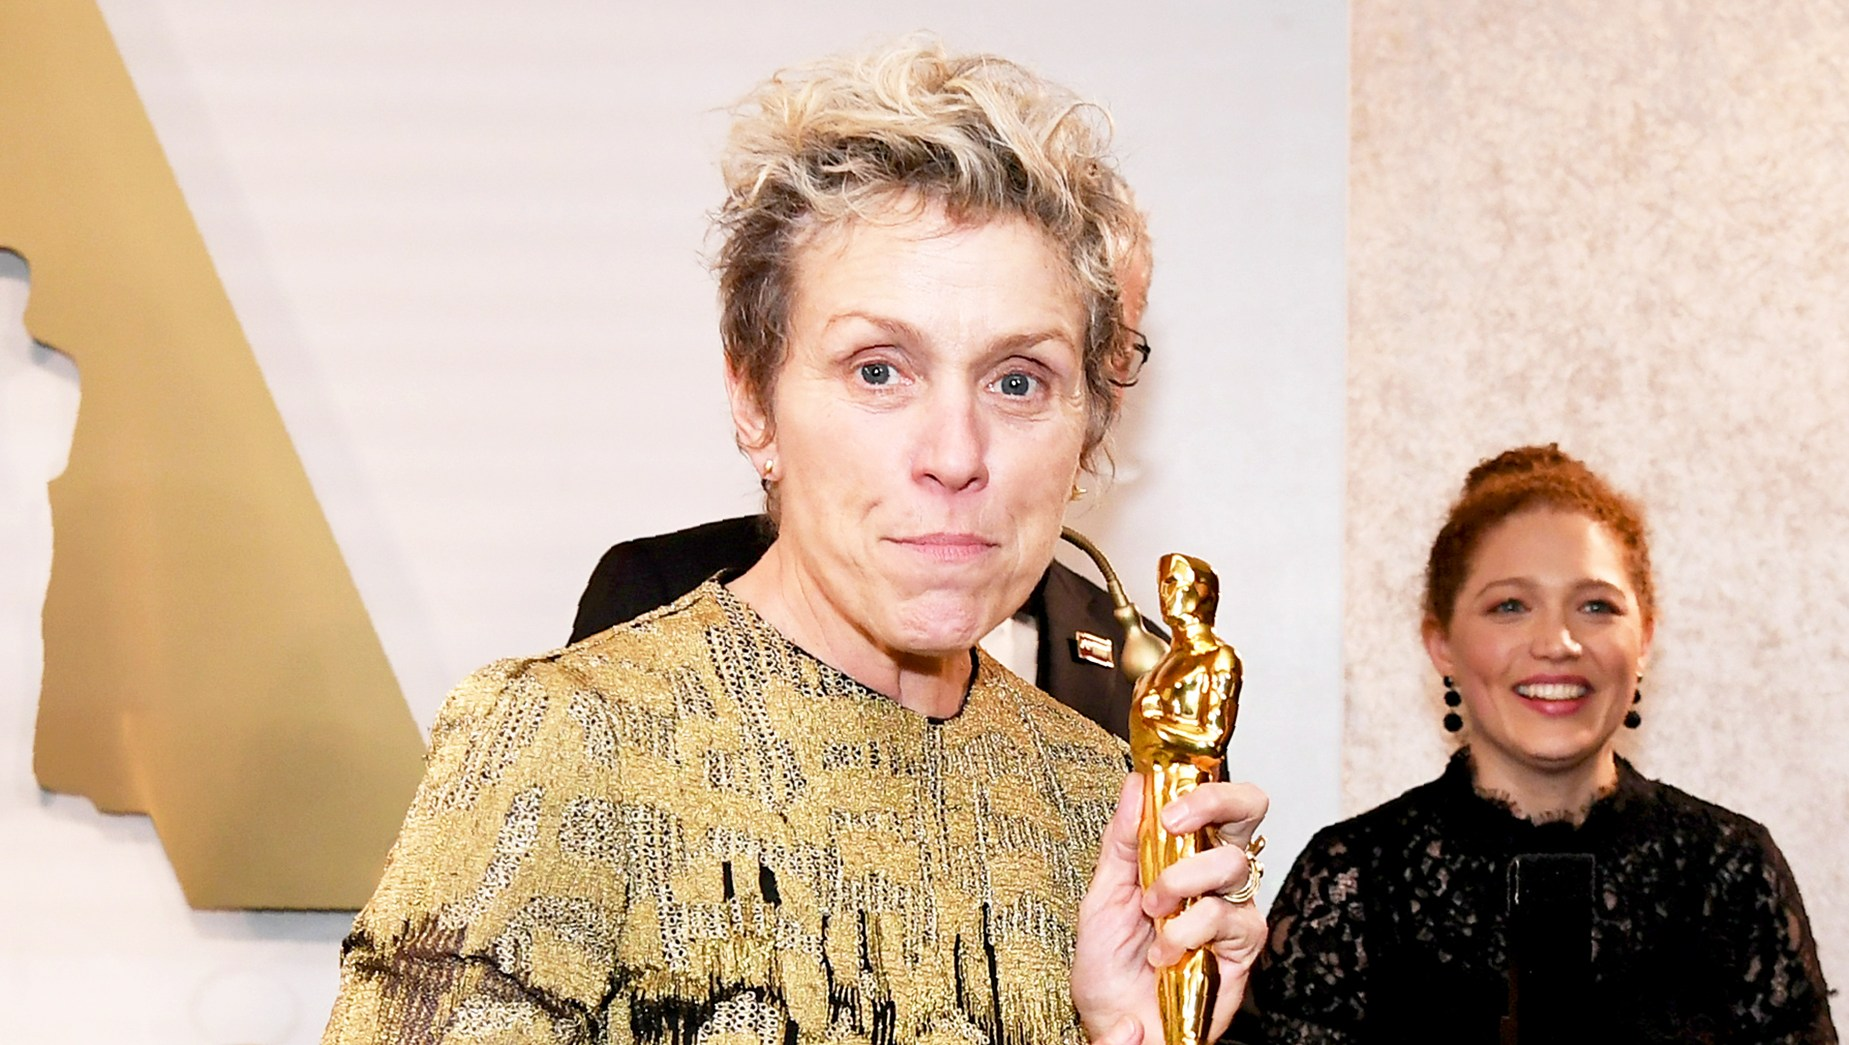 Frances McDormand attends the 90th Annual Academy Awards Governors Ball at the Hollywood & Highland Center on March 4, 2018, in Hollywood, California.